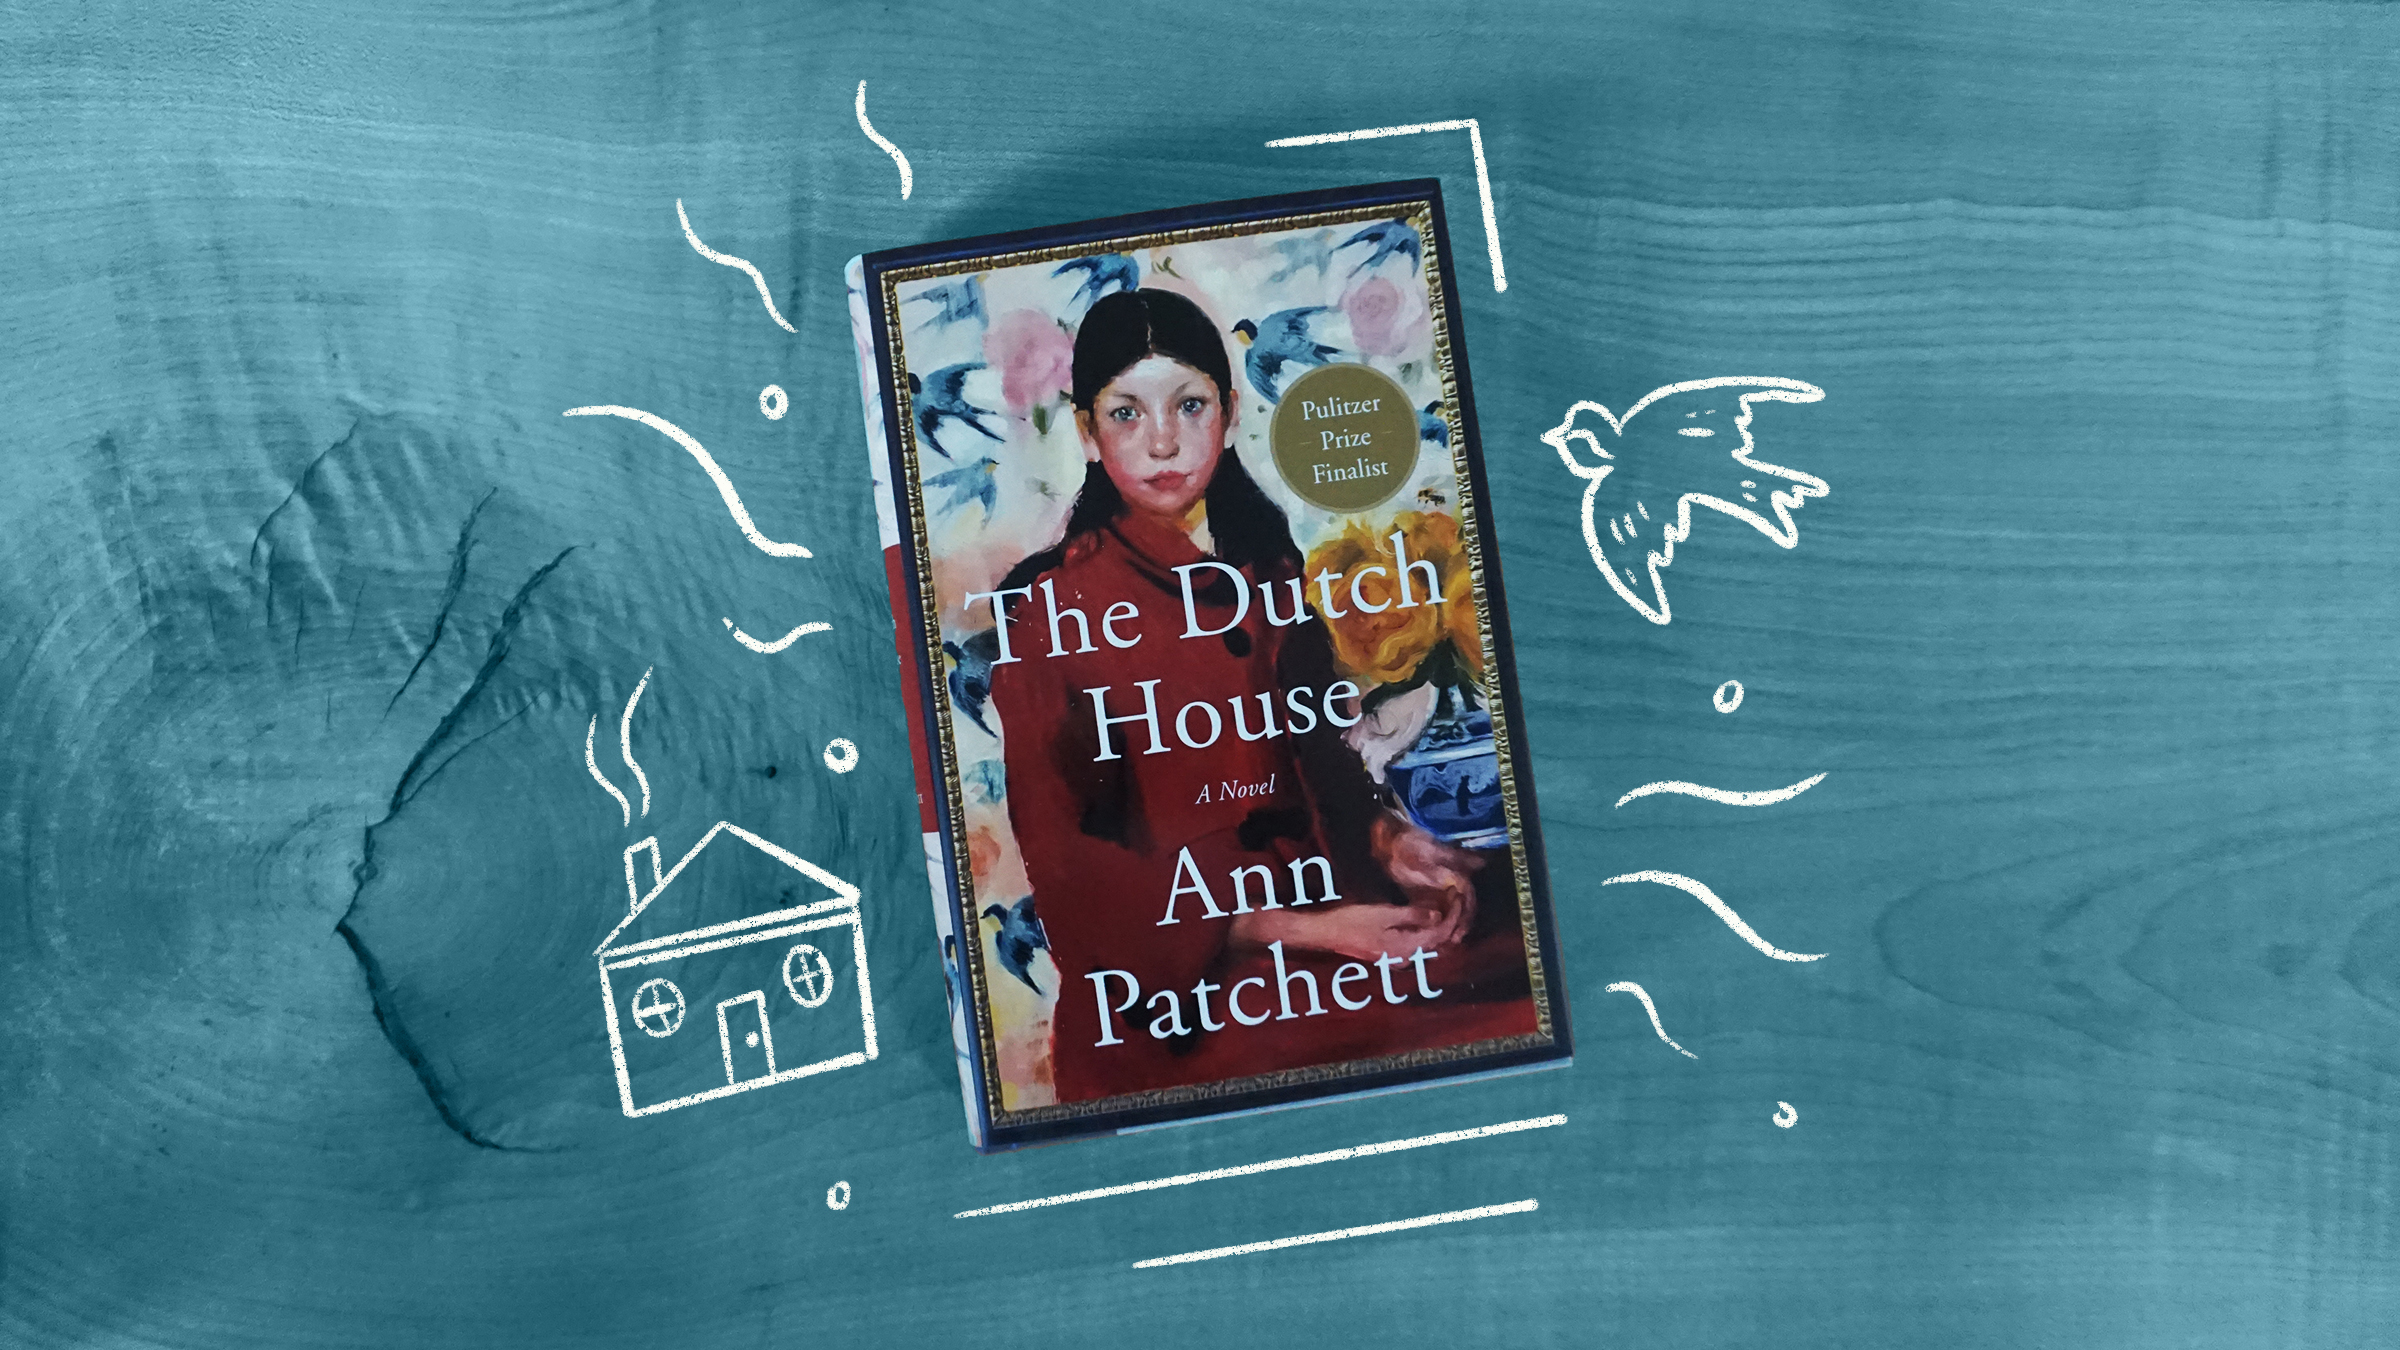 The book cover of The Dutch Houes by Ann Patchett